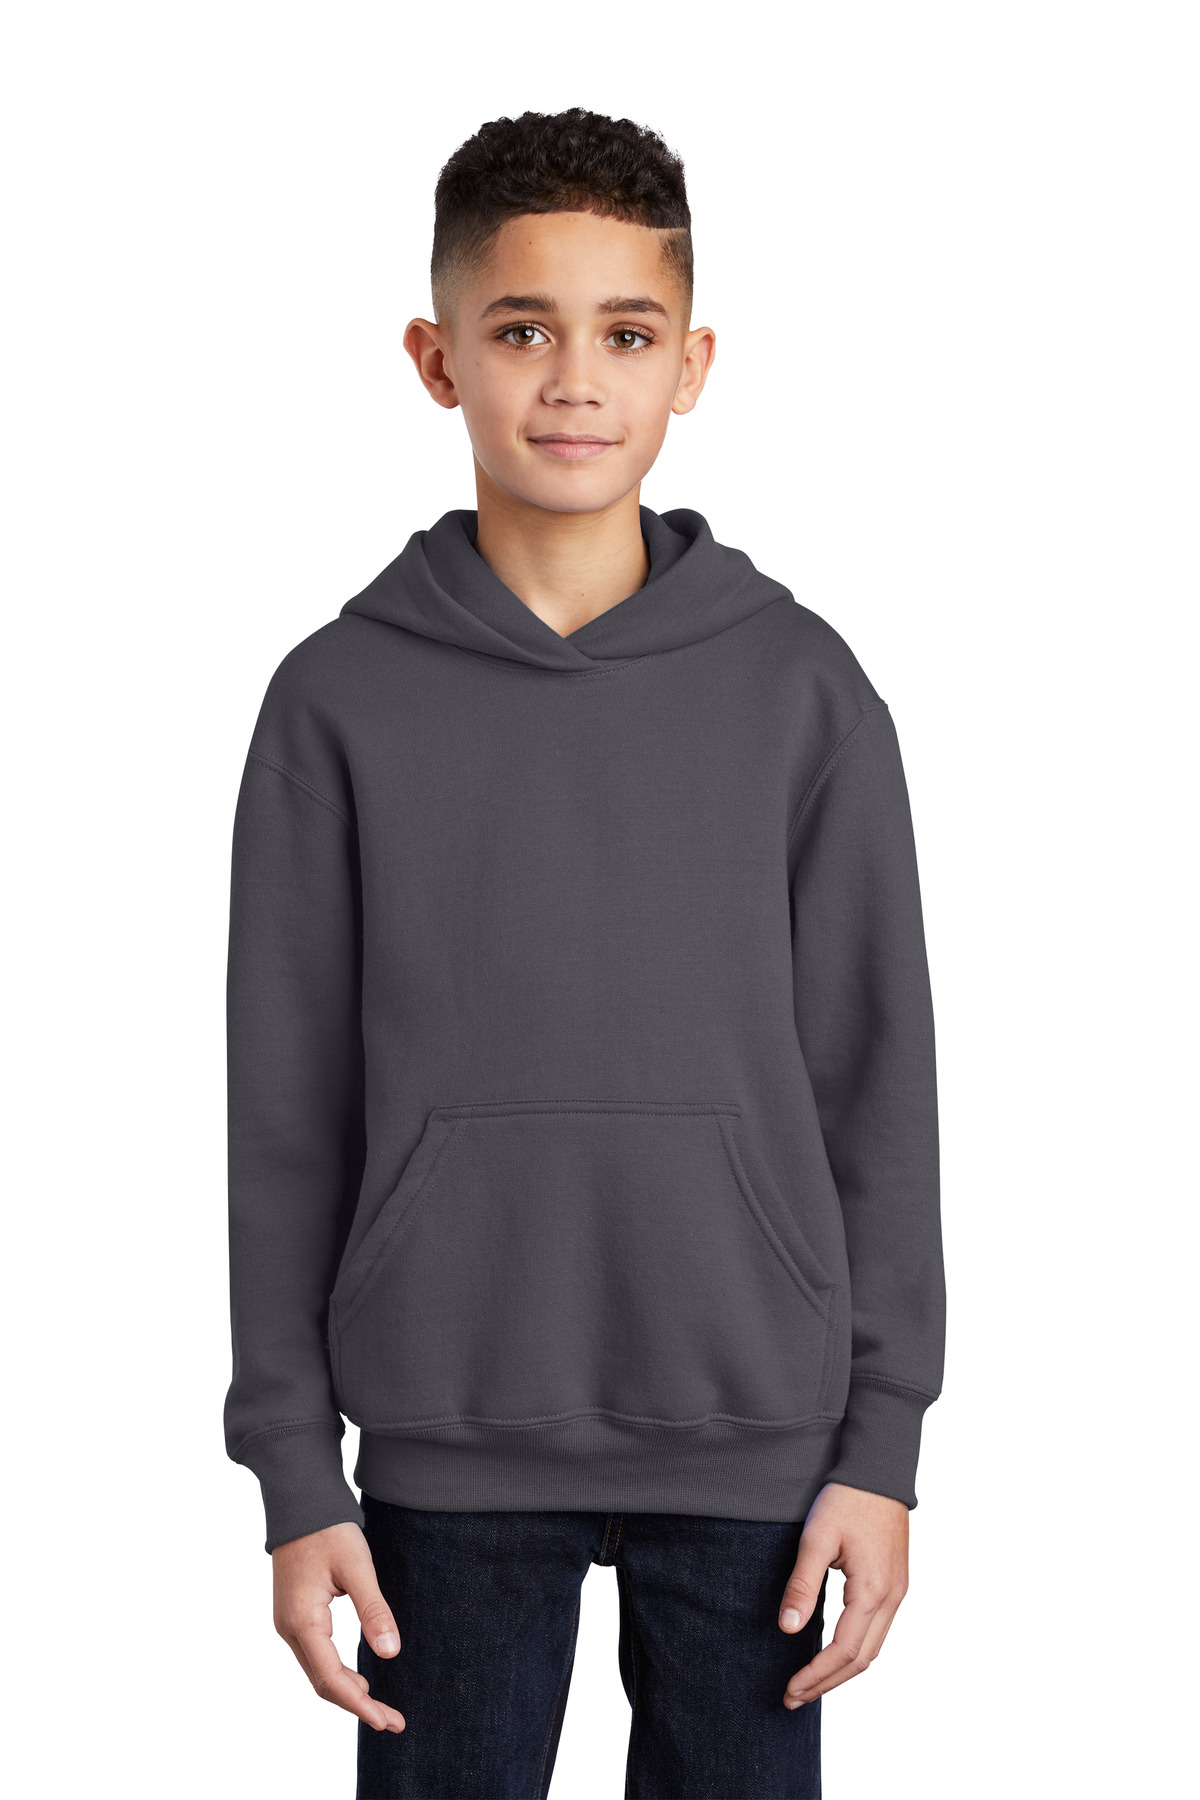 Port & Company ®  - Youth Core Fleece Pullover Hooded Sweatshirt.  PC90YH - Charcoal